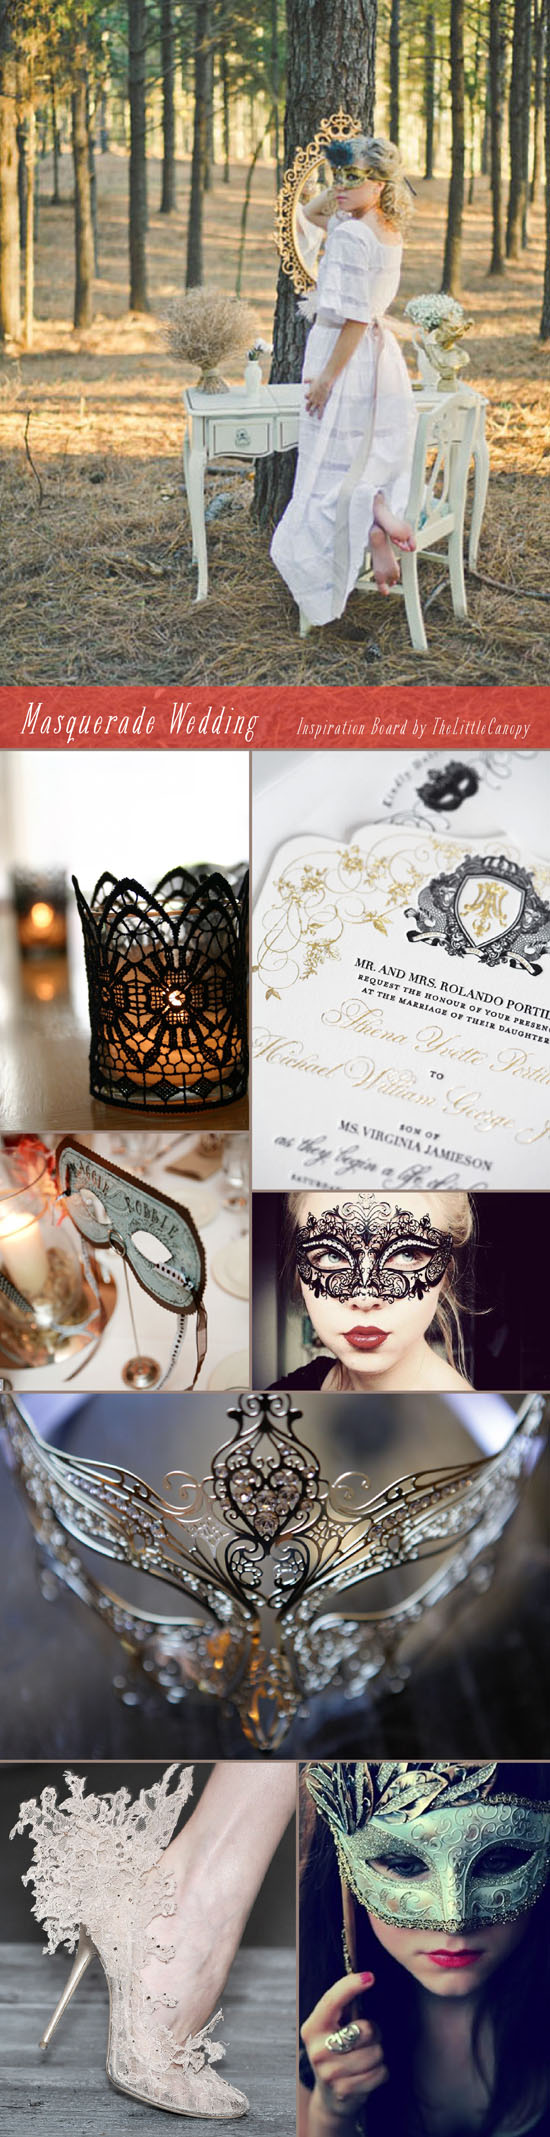 Inspiration Board: Masquerade Wedding // Ooh. Looking for a spicy and mysterious theme for your non-typical wedding? Fall in love with the beautiful details and textures of a masquerade wedding theme! Layers of lace and intricate patterns - so romantic! Enjoy!